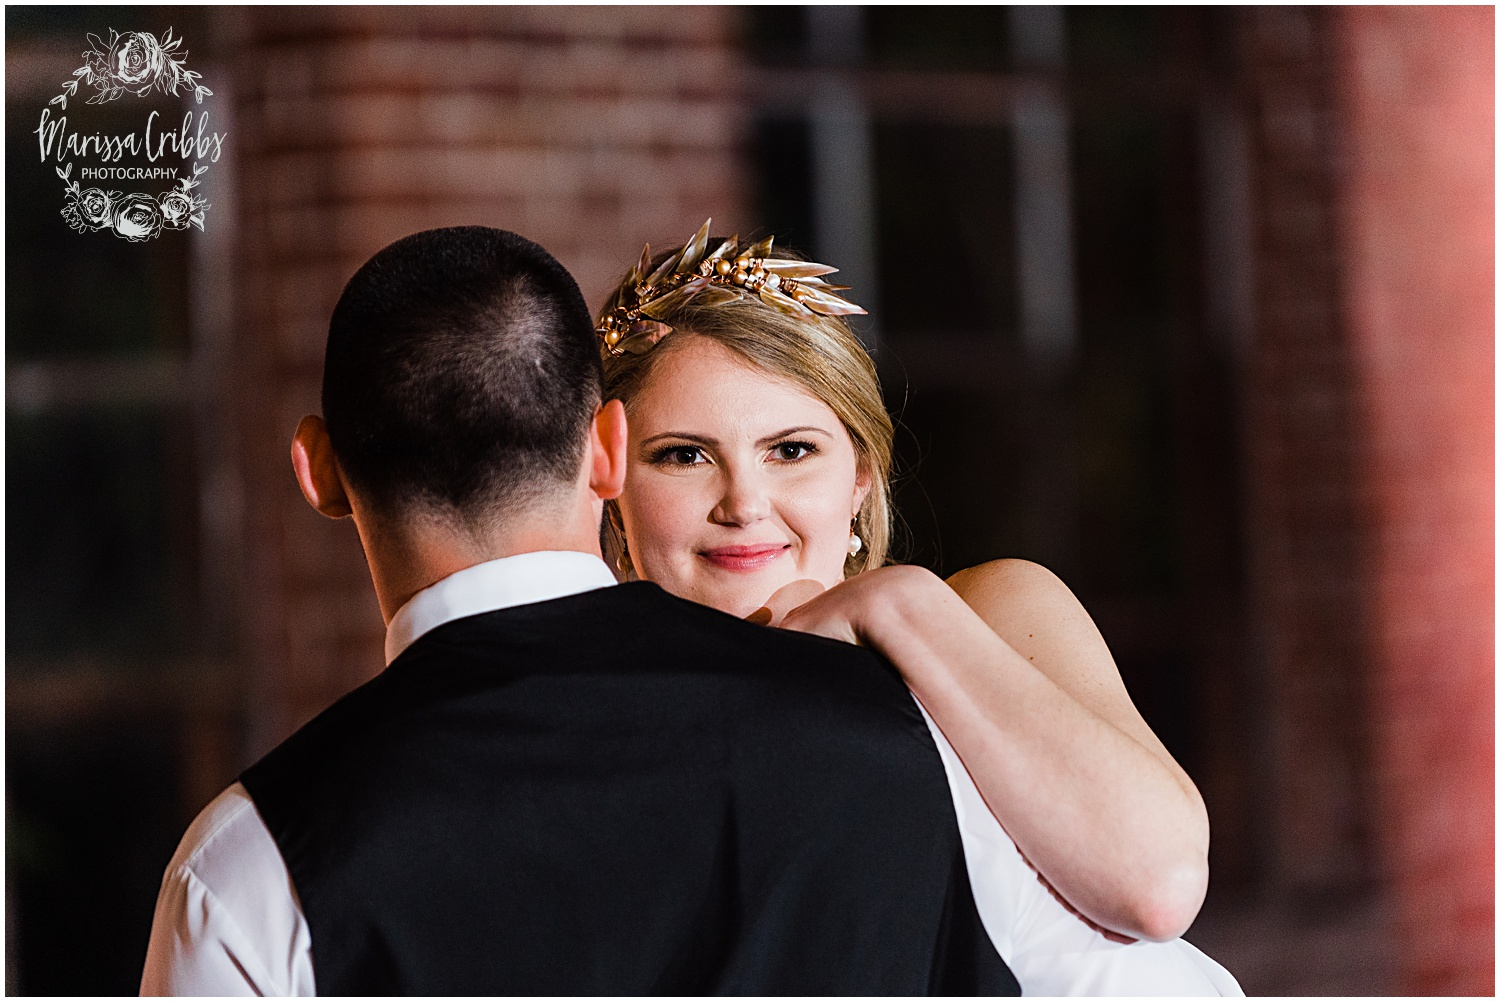 ABBY & CHARLIE WEDDING | THE HUDSON EVENT SPACE WEDDING | MARISSA CRIBBS PHOTOGRAPHY_7577.jpg